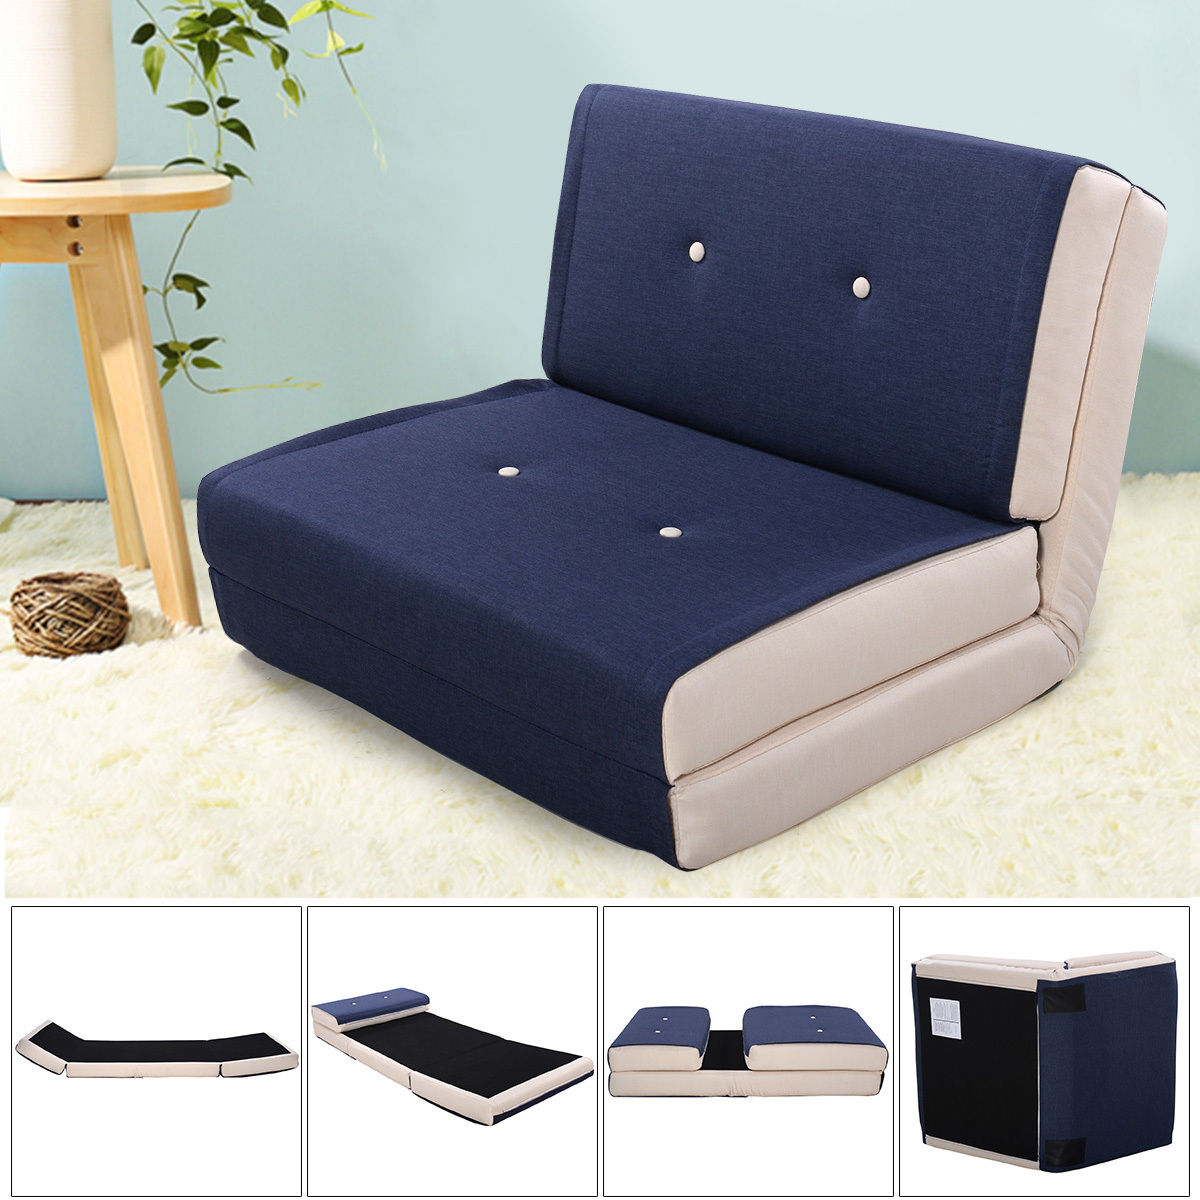 Giantex Fold Down Chair Flip Out Lounger Convertible Sleeper Bed Couch Modern Sofa Bed Living Room Furniture HW52681BL